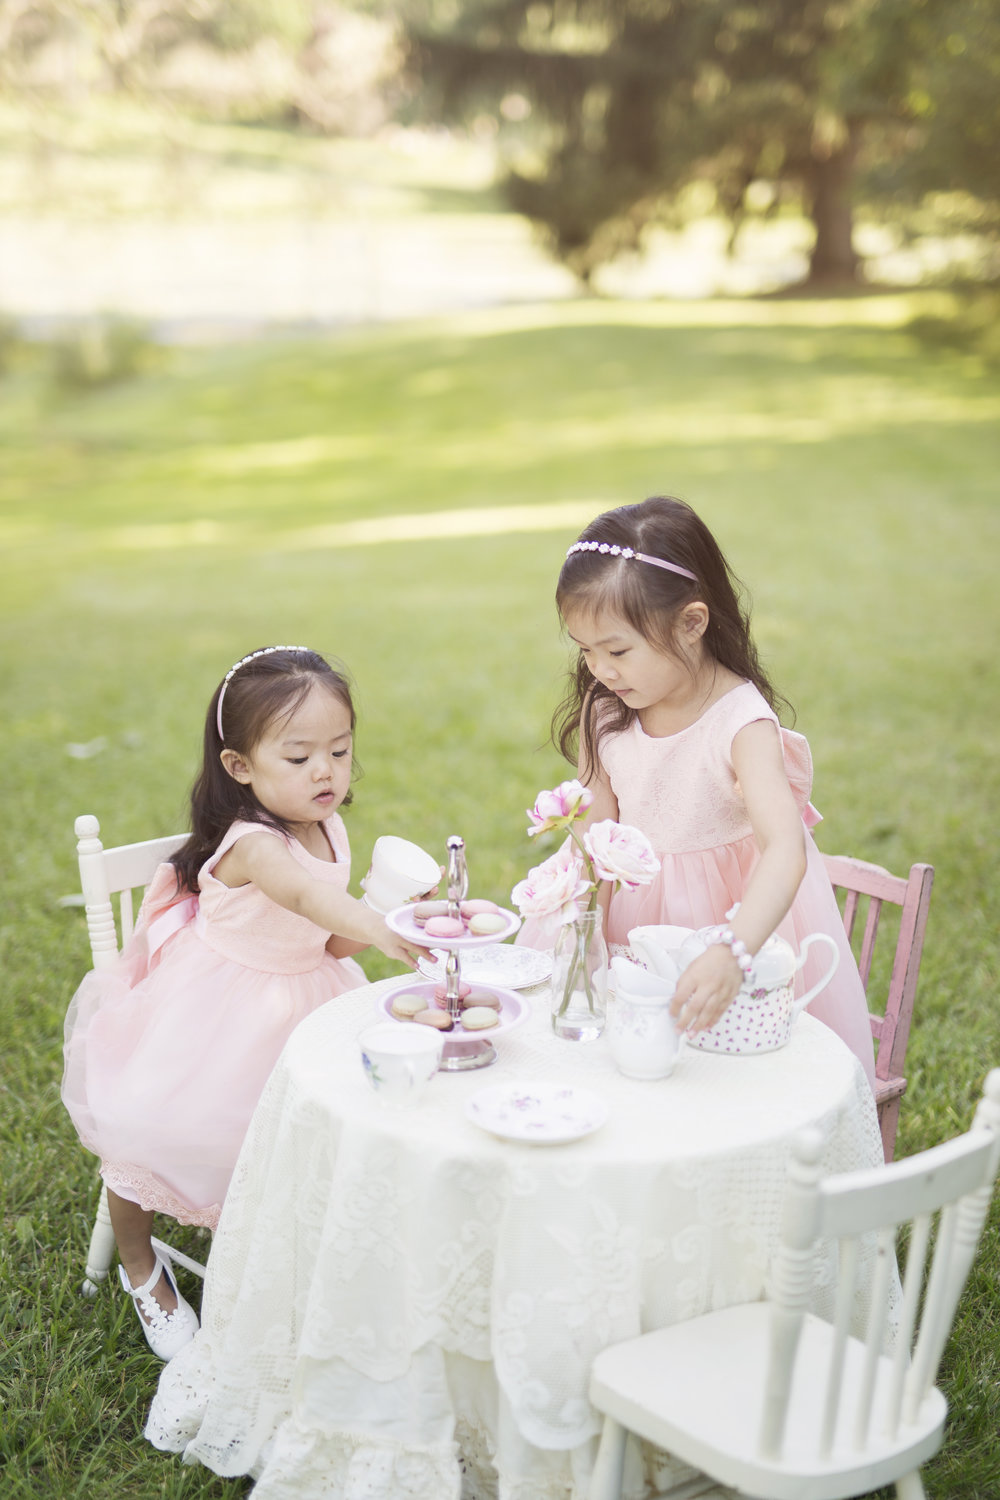 Ava_Emma_TeaParty_1.jpg